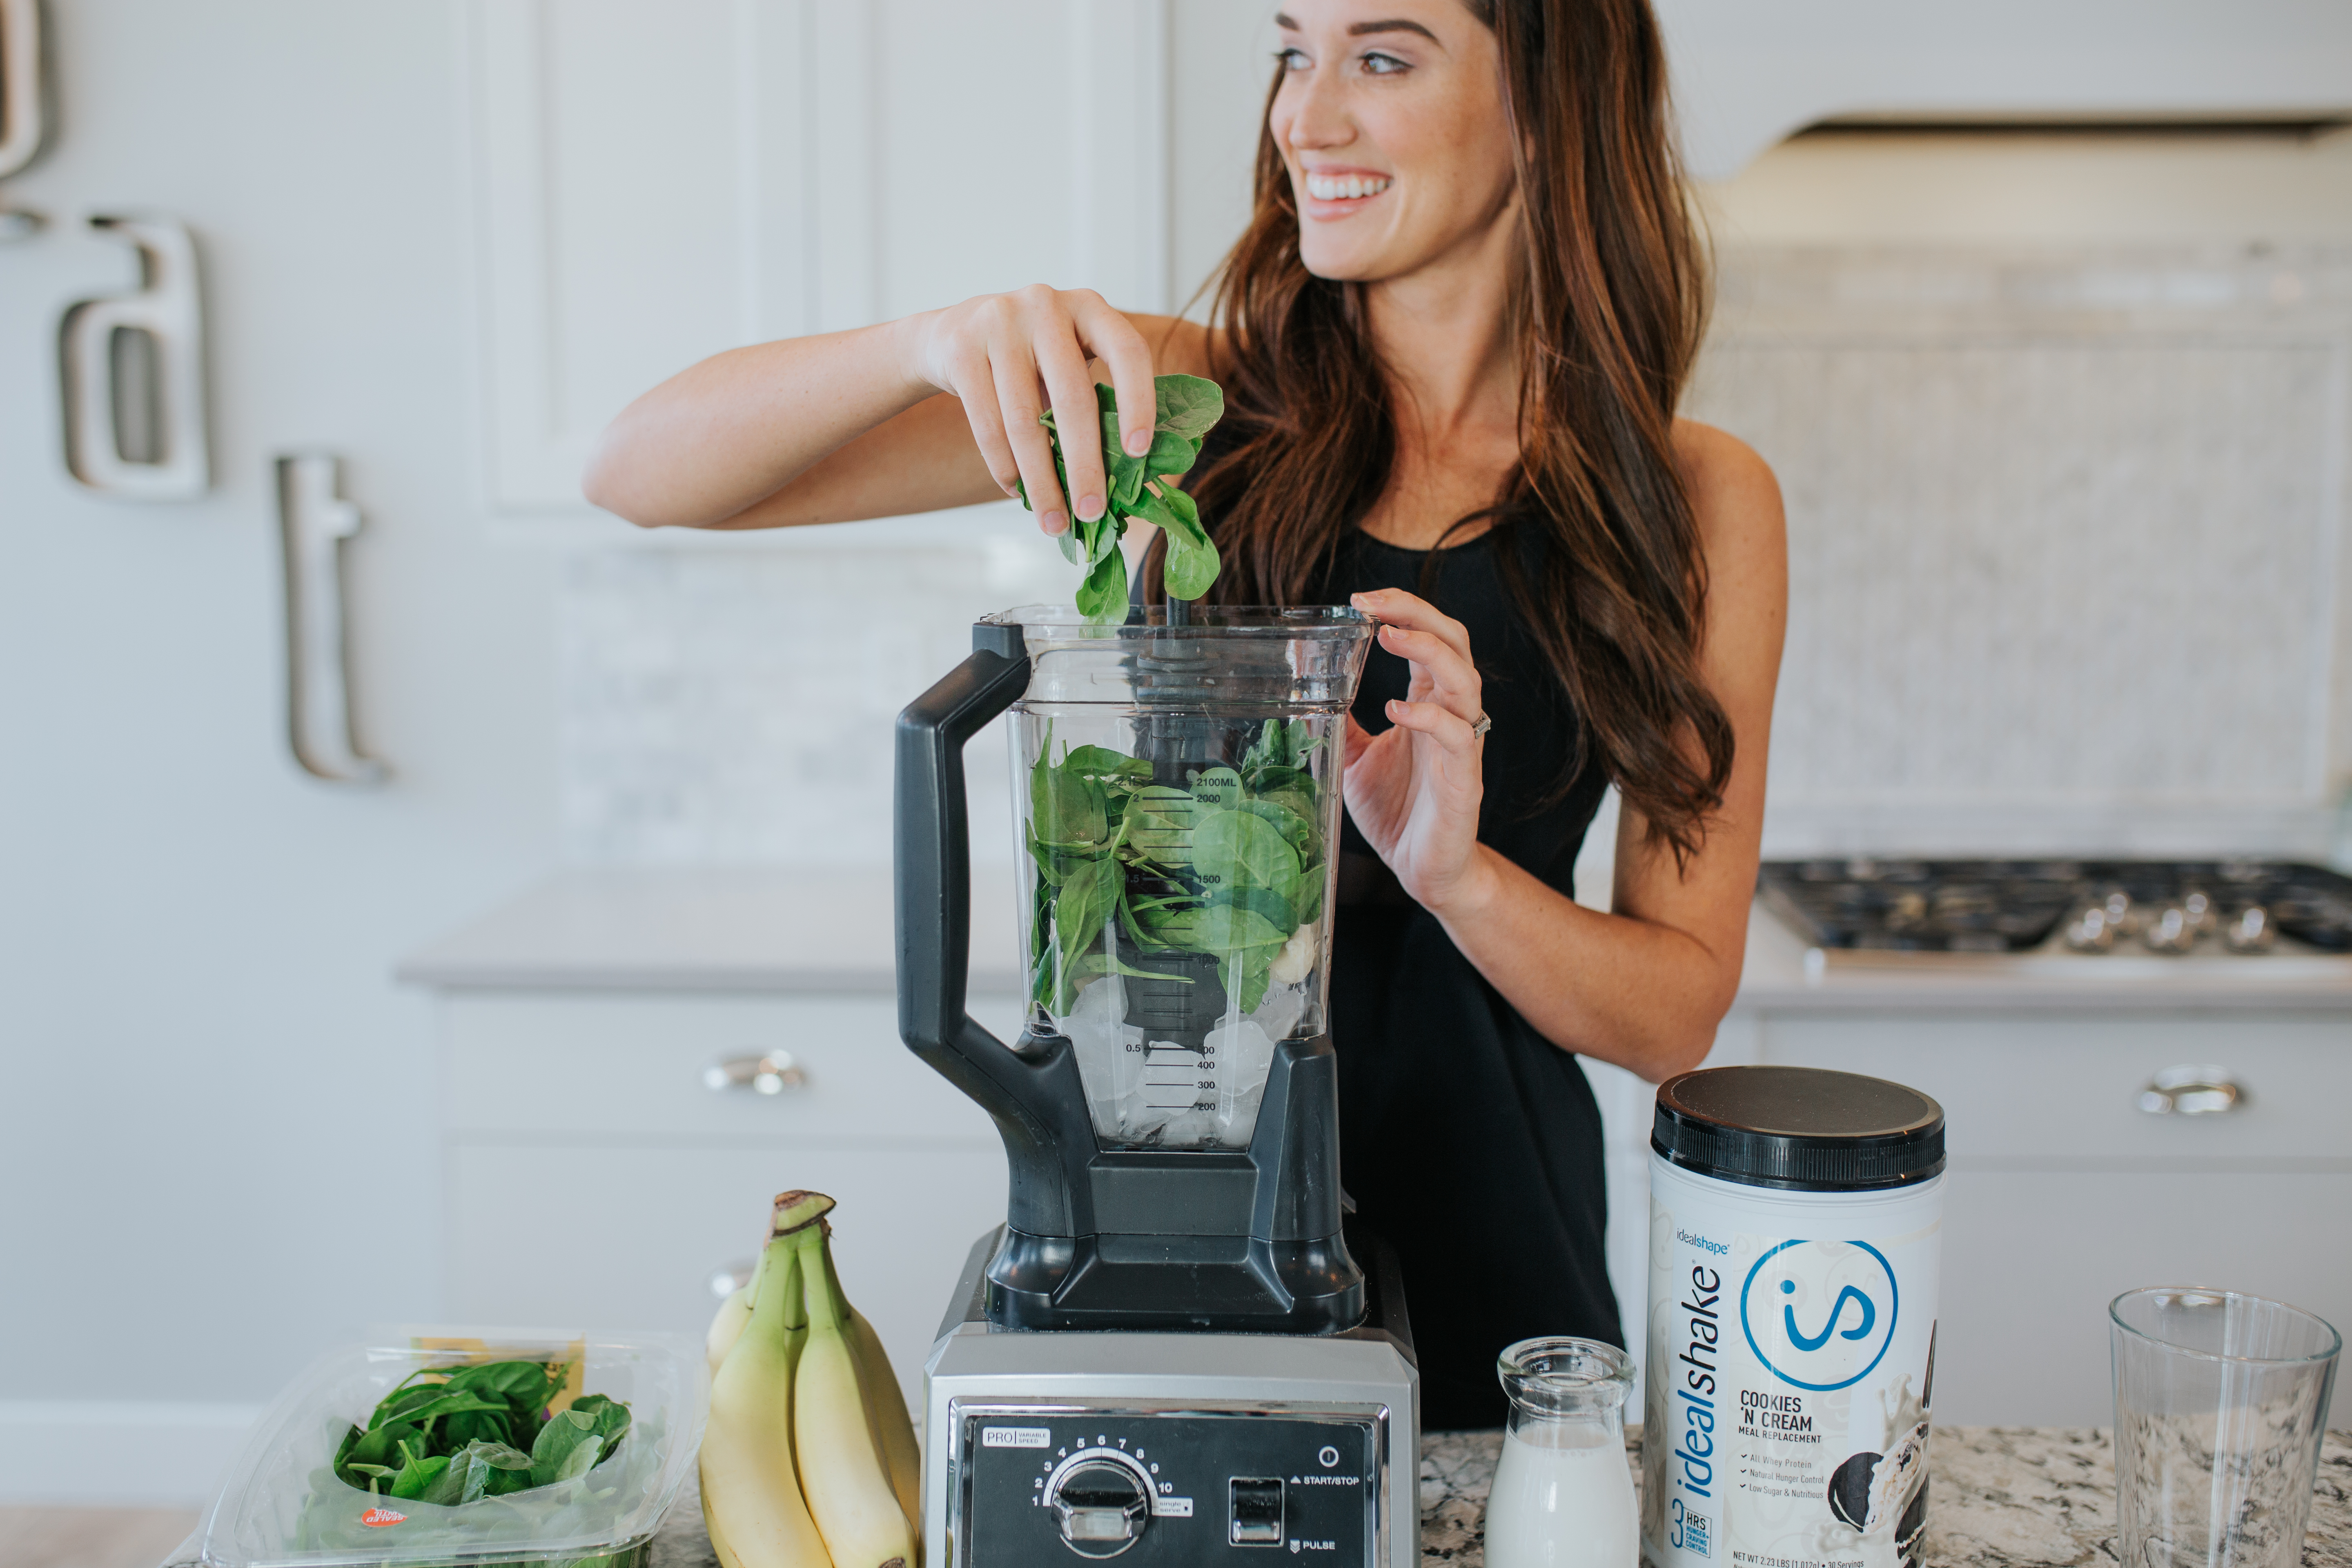 Jade Roper making a weight loss smoothie